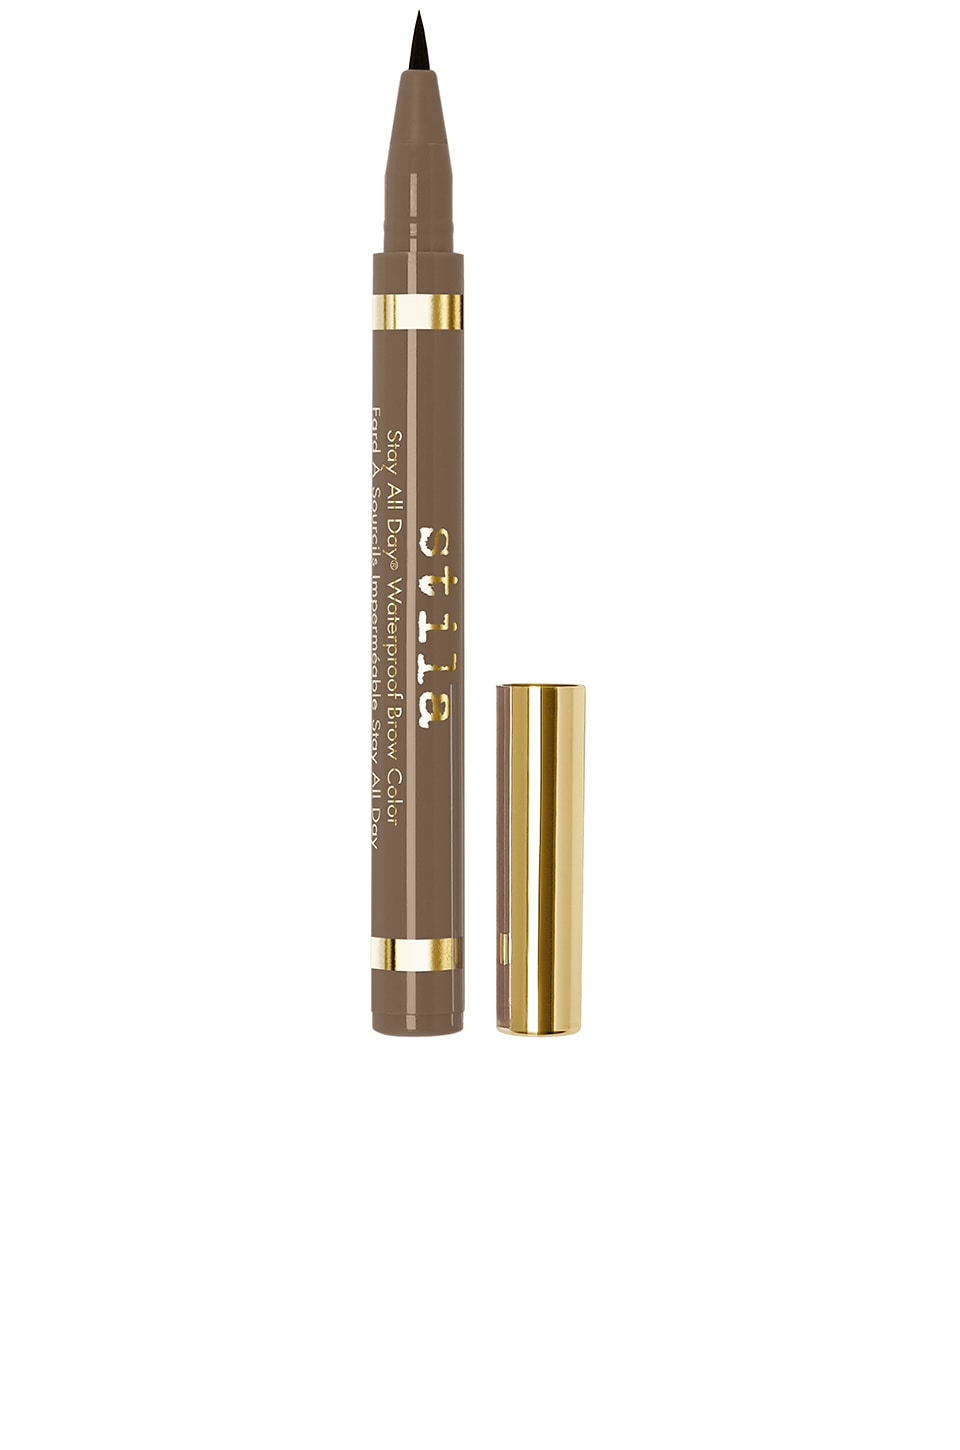 Stila Stay All Day Waterproof Brow Color in Light